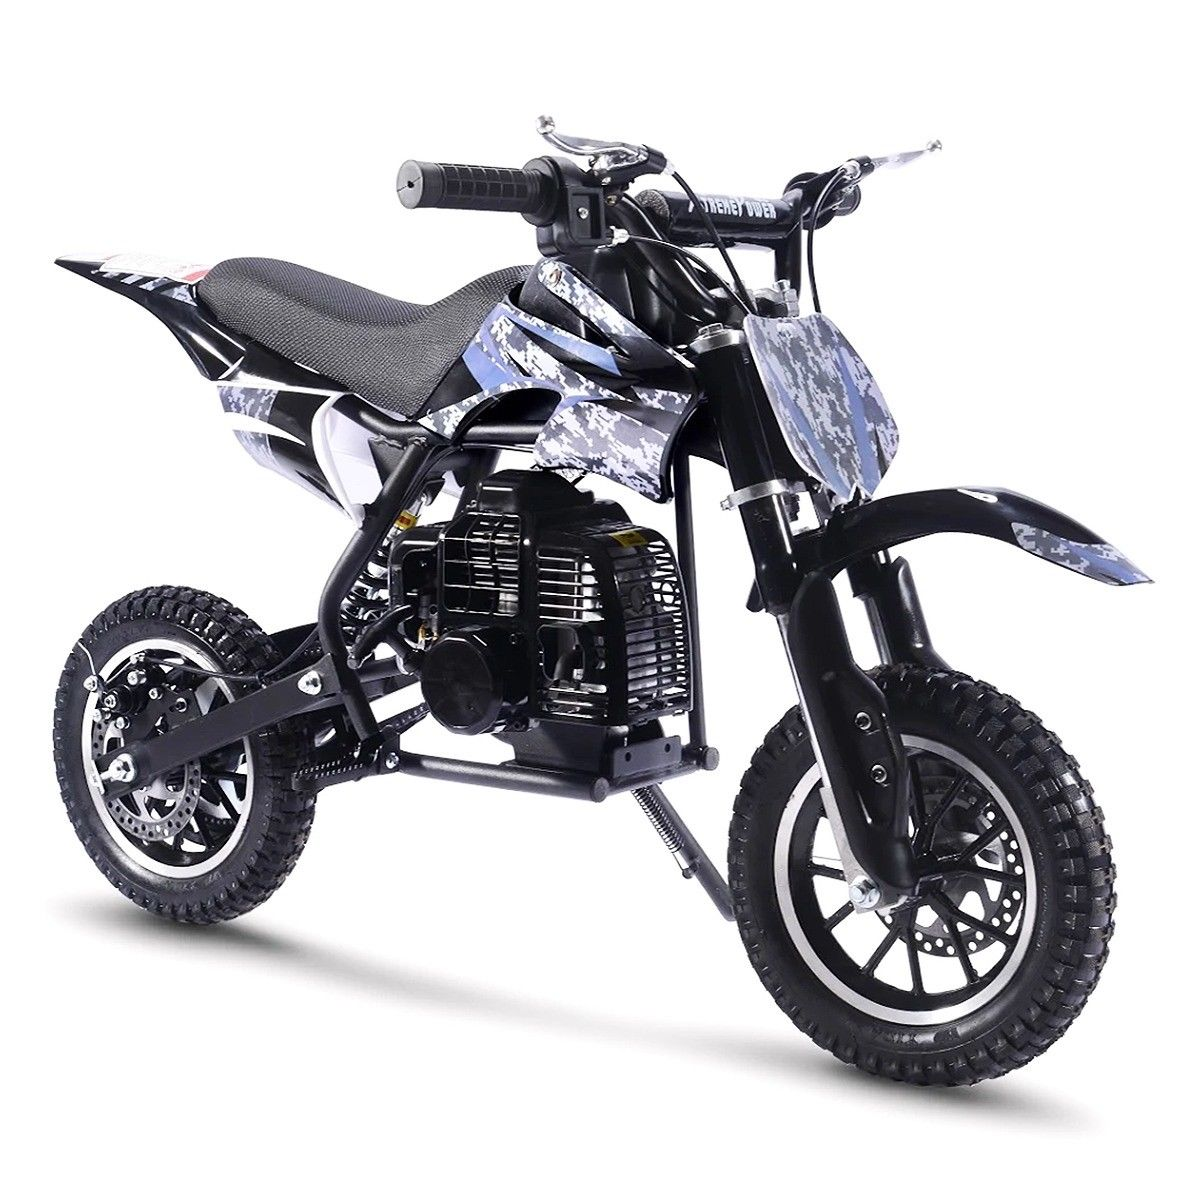 49cc-2-Stroke-Gas-Motorized-Mini-Dirt-devil-scooter-Bike-Pocket-Bike-Pit thumbnail 15